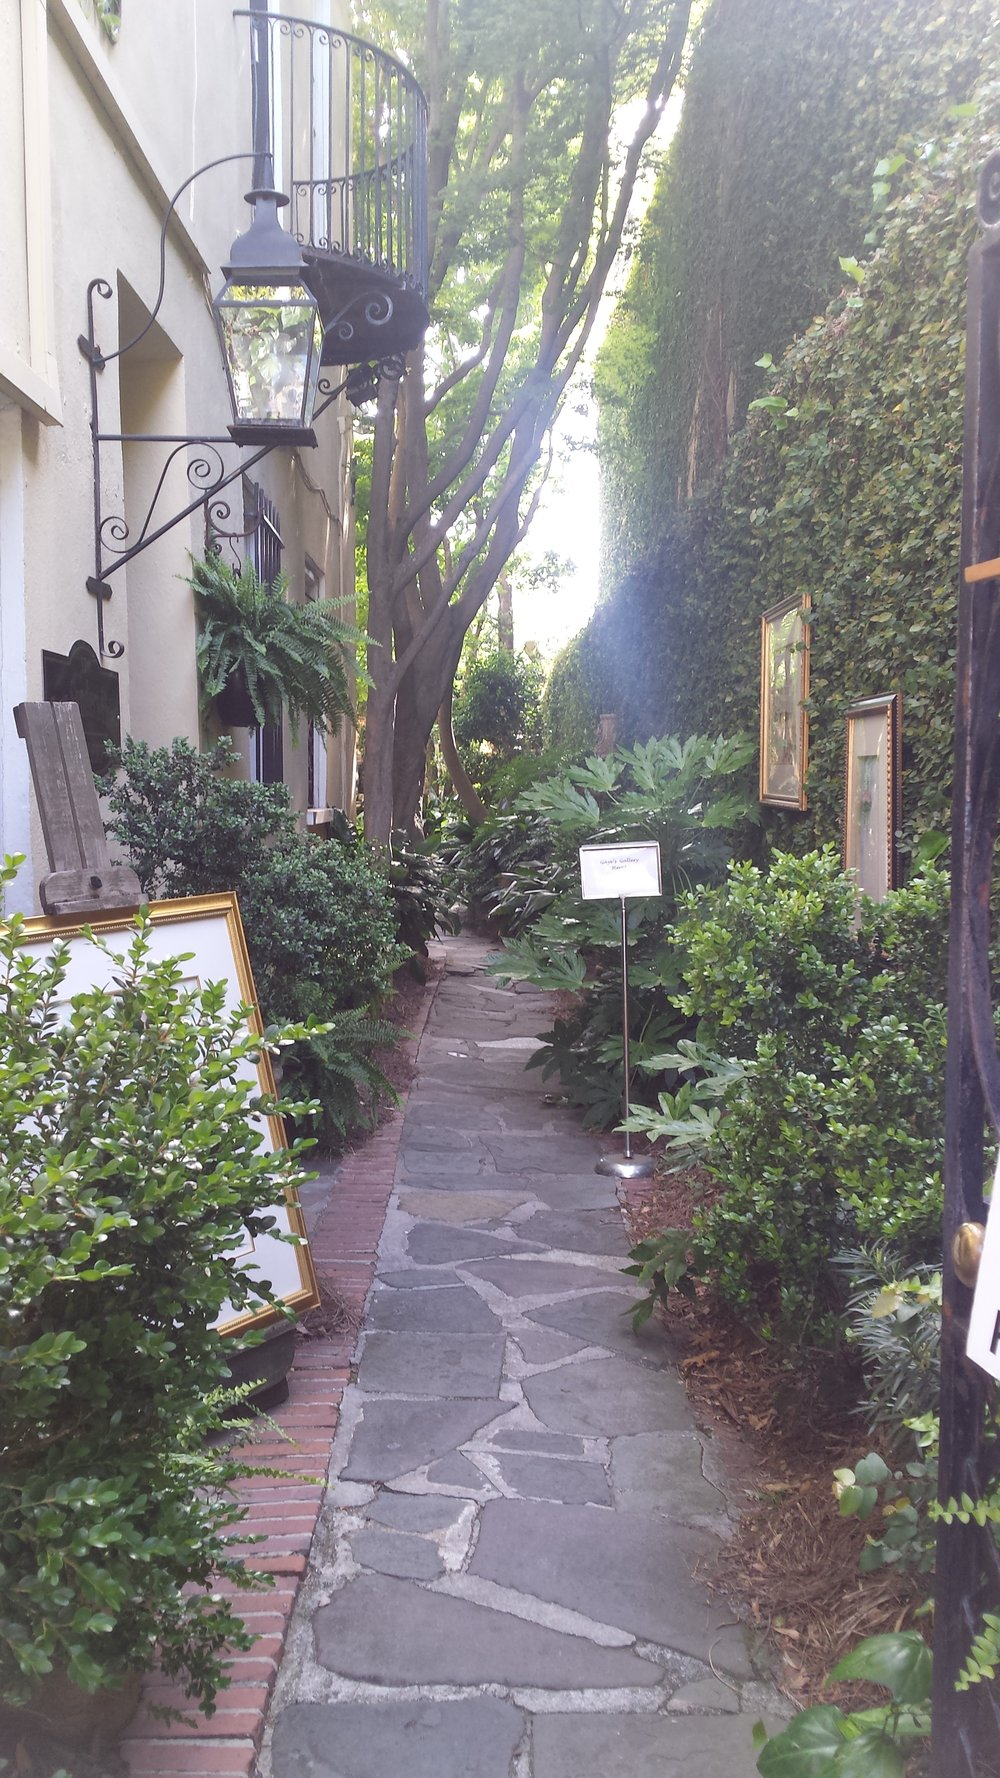 So many interesting courtyards around Charleston's historic district.